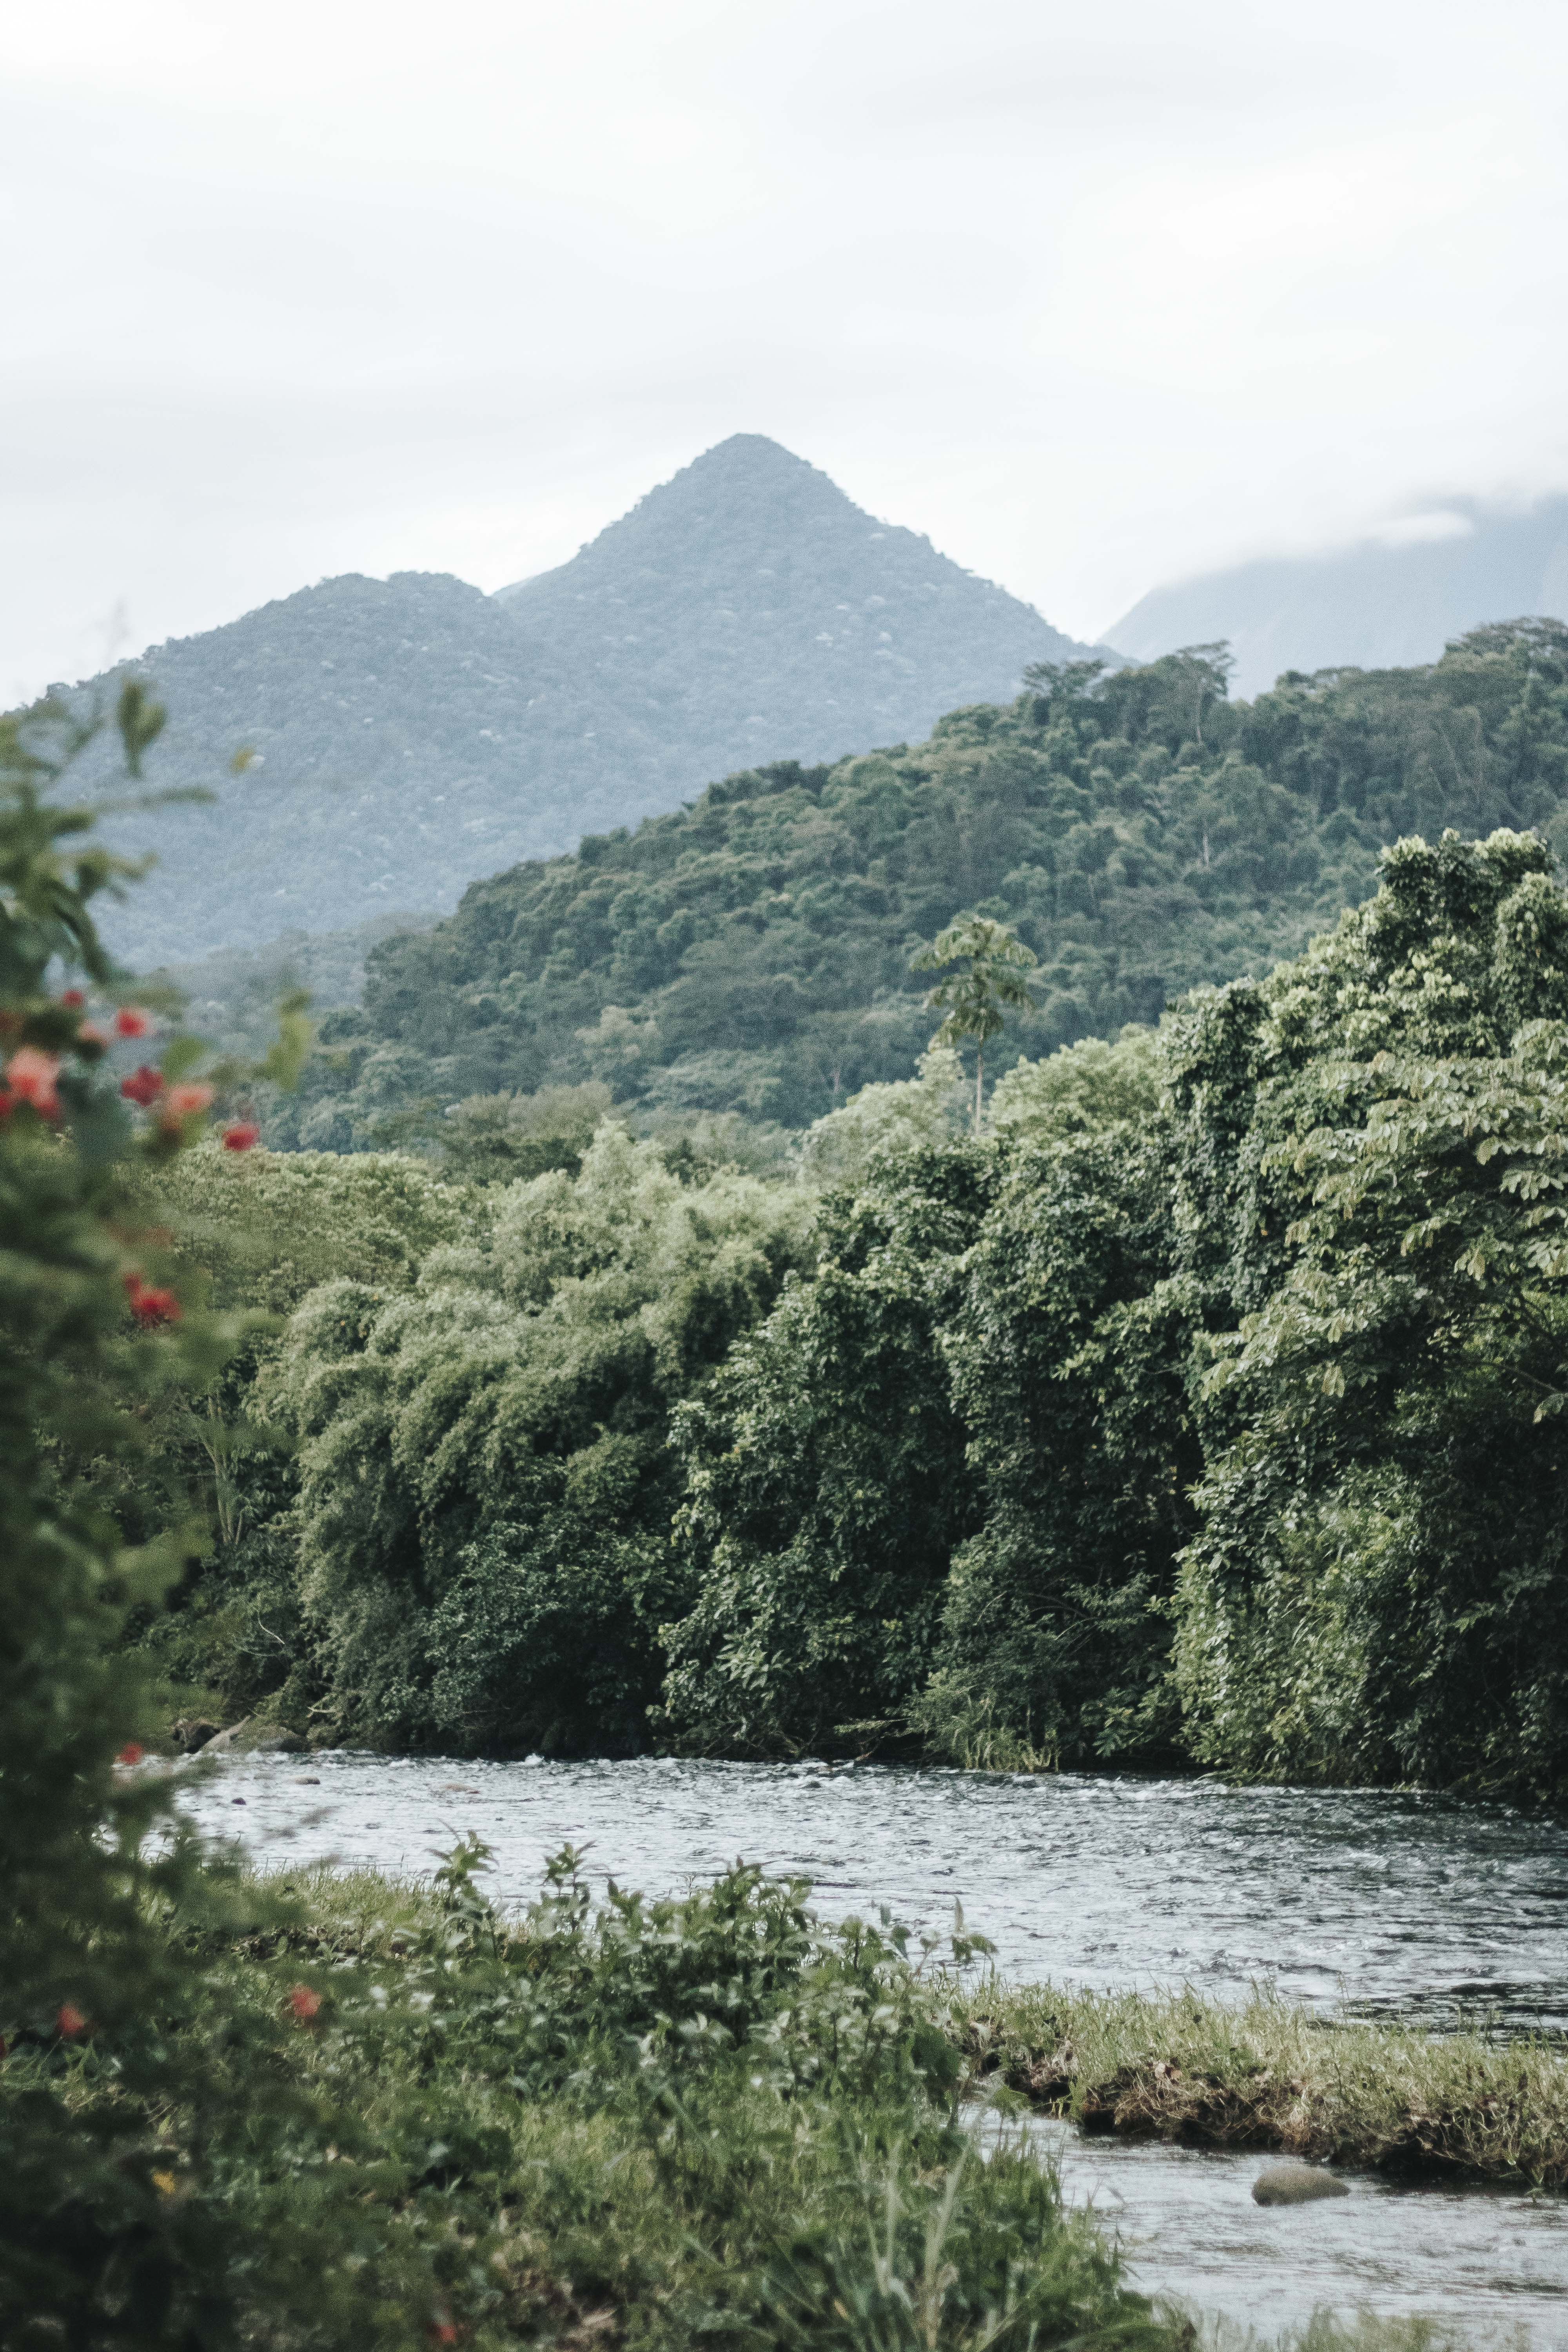 green trees in river at daytime